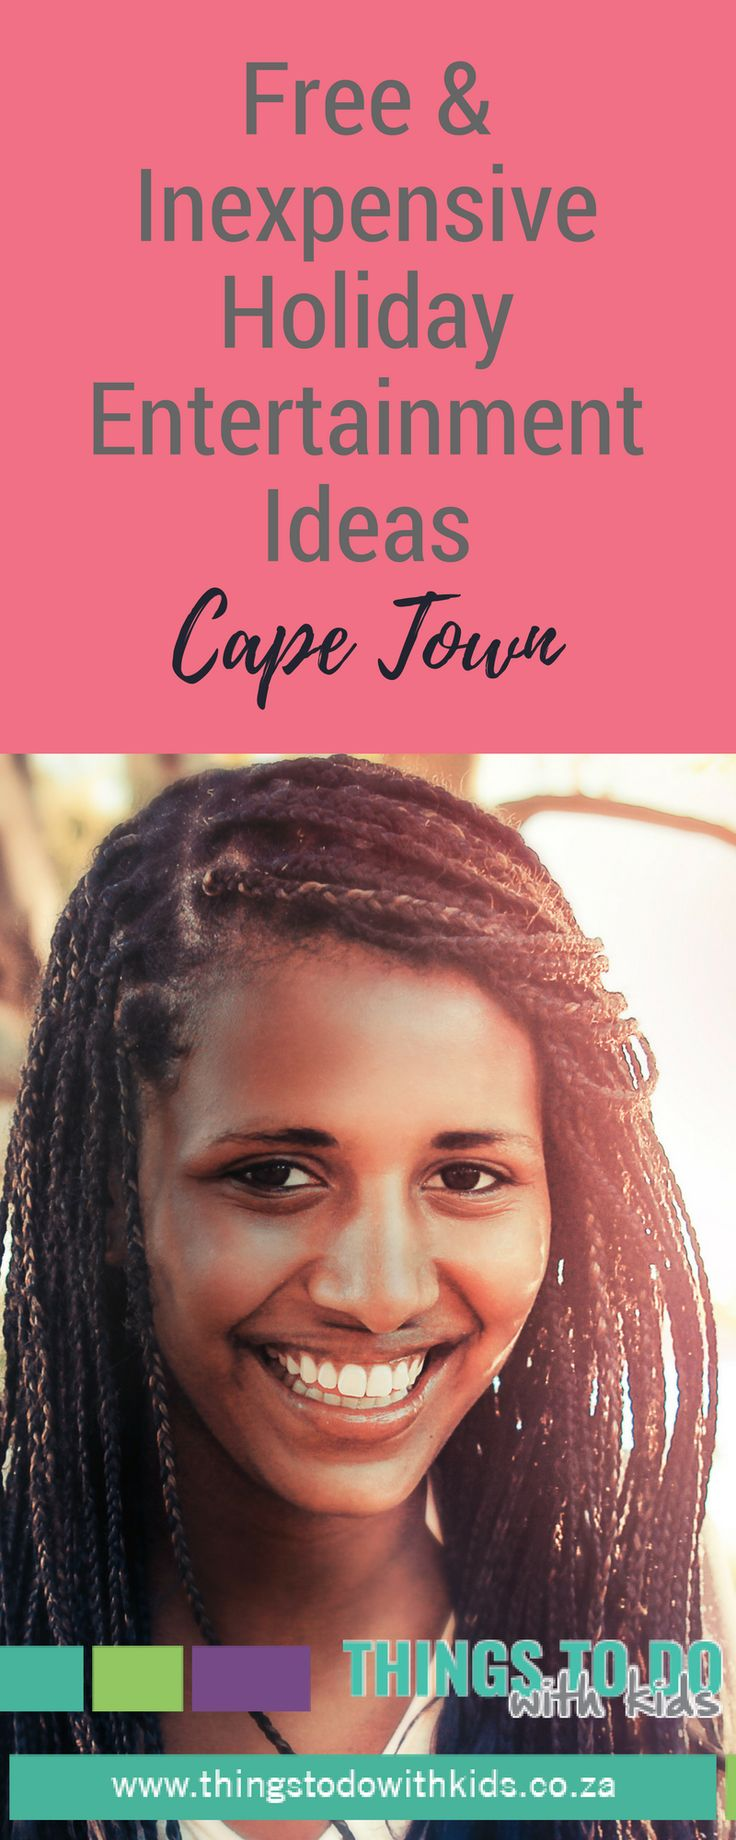 Free & Inexpensive things to do in Cape Town | July school holiday activities for kids | Activities & Excursions in Cape Town this winter